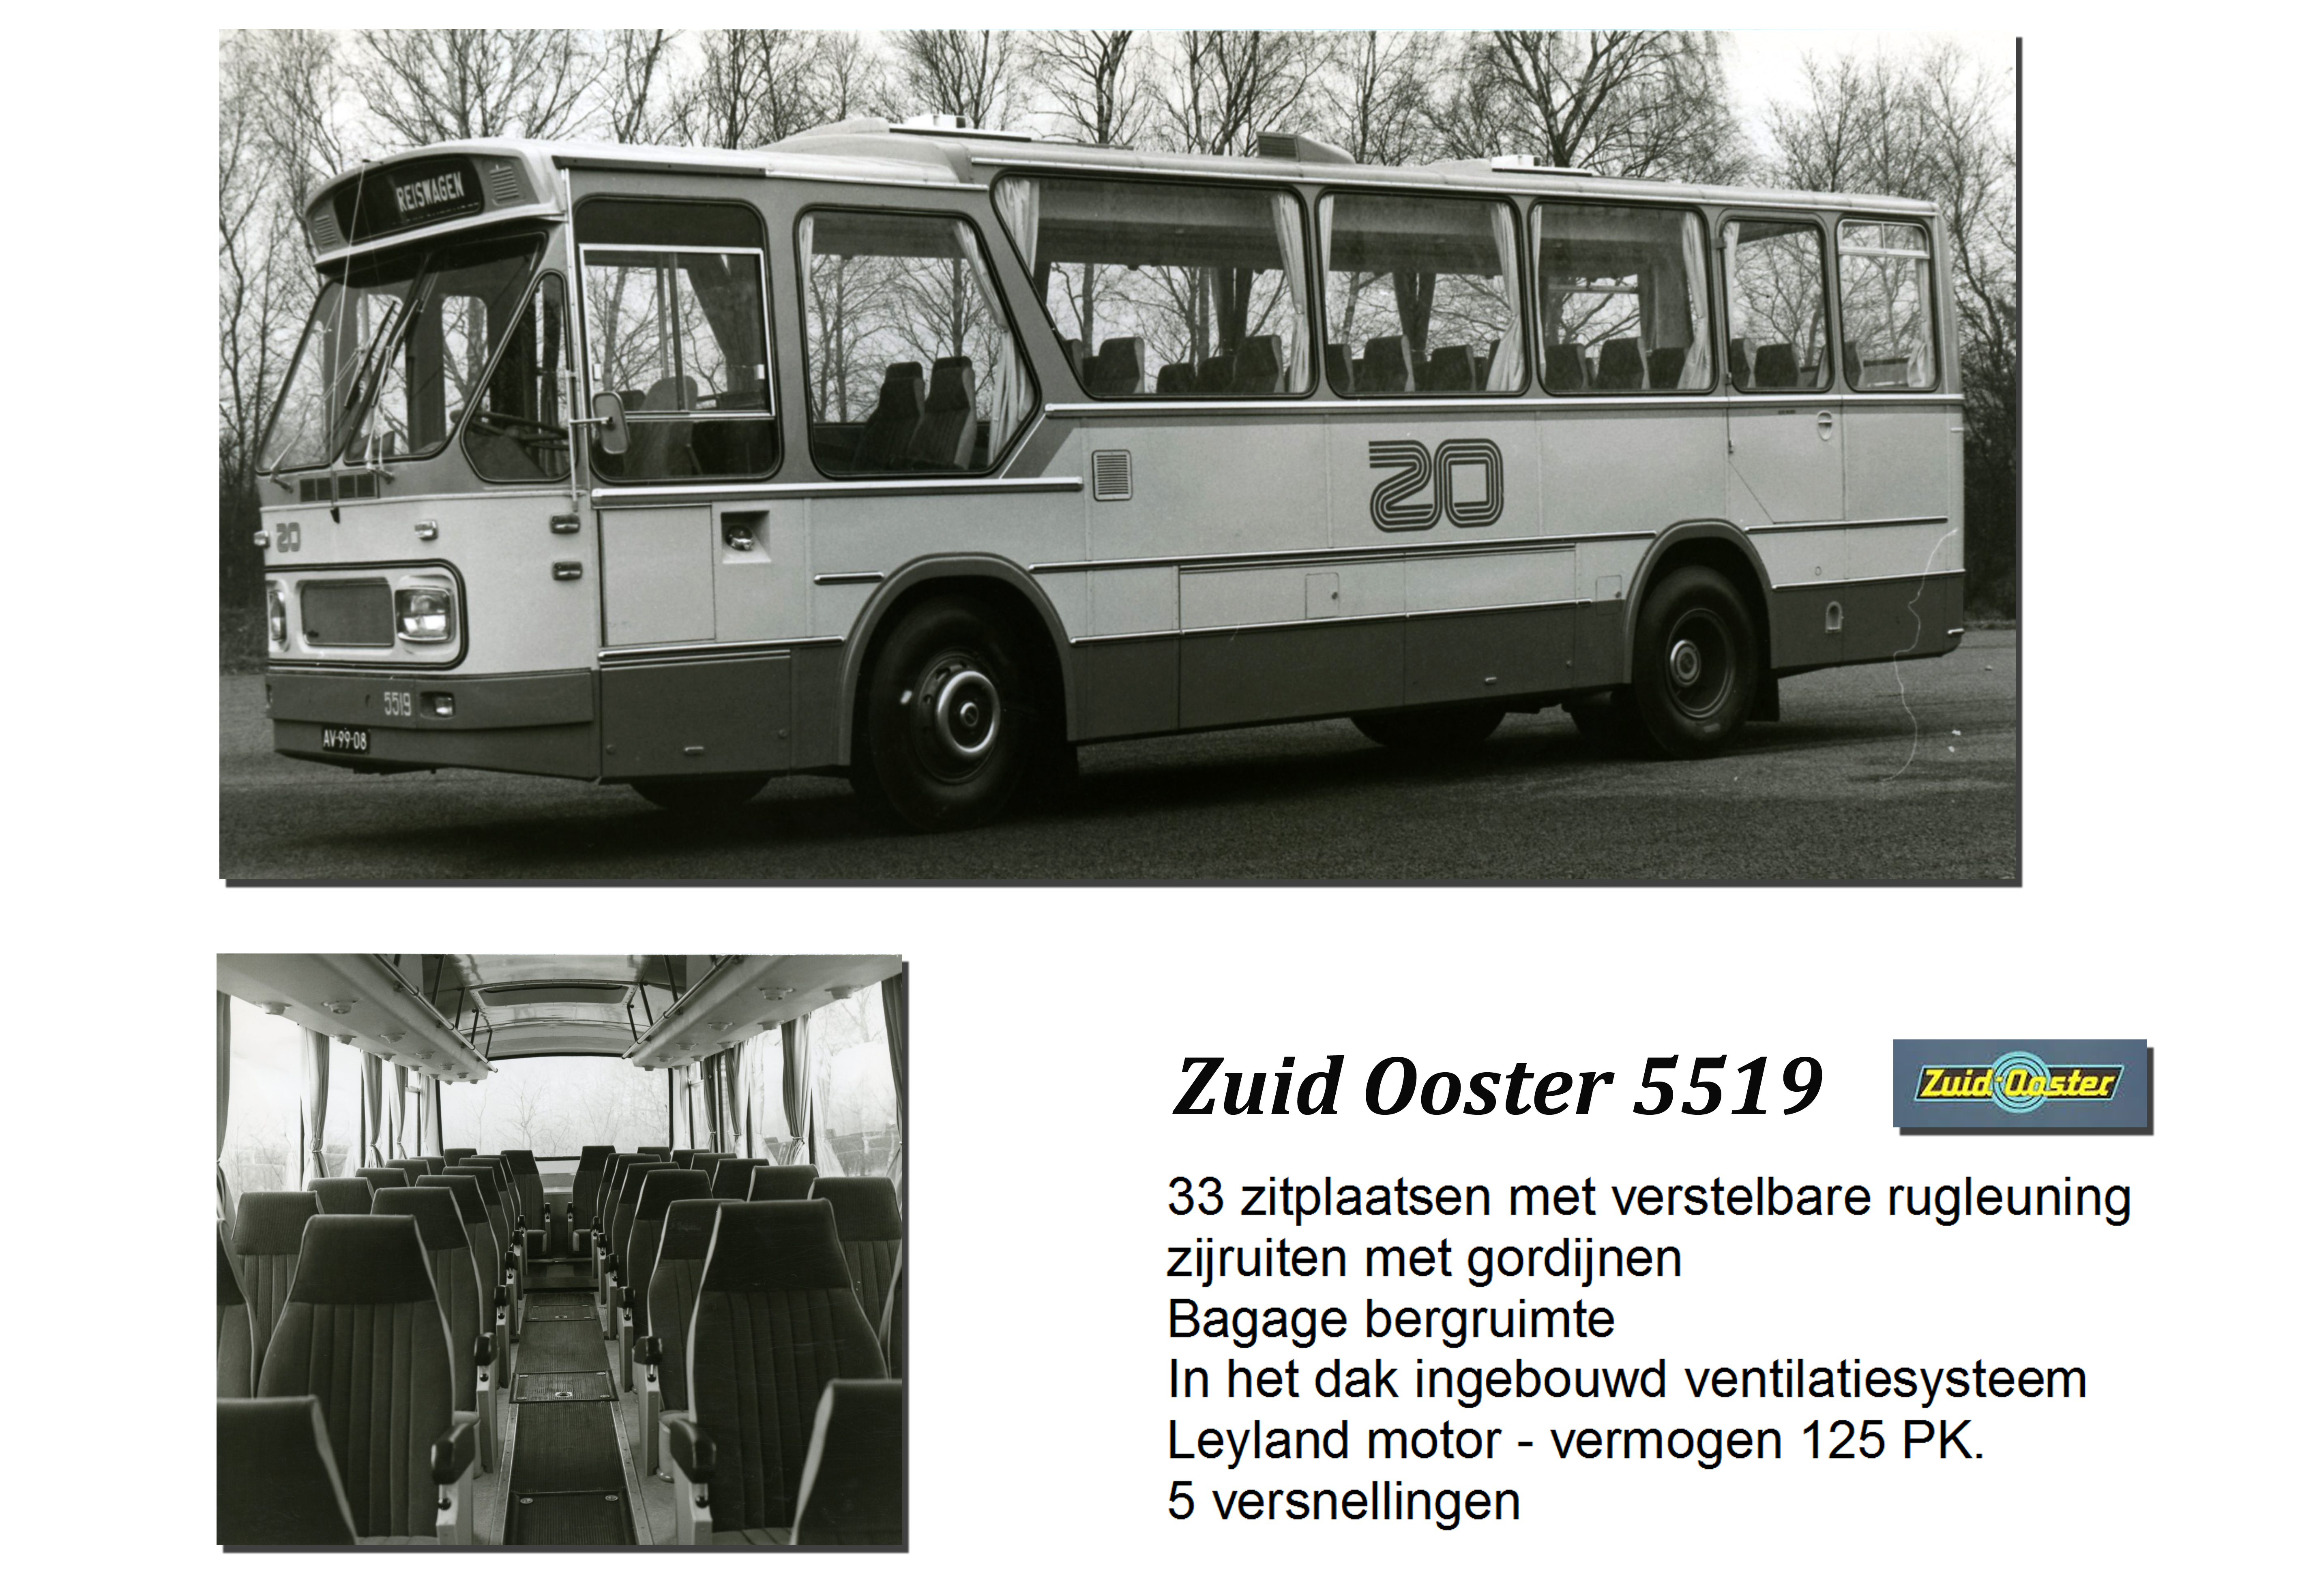 5519-Zuid-Ooster